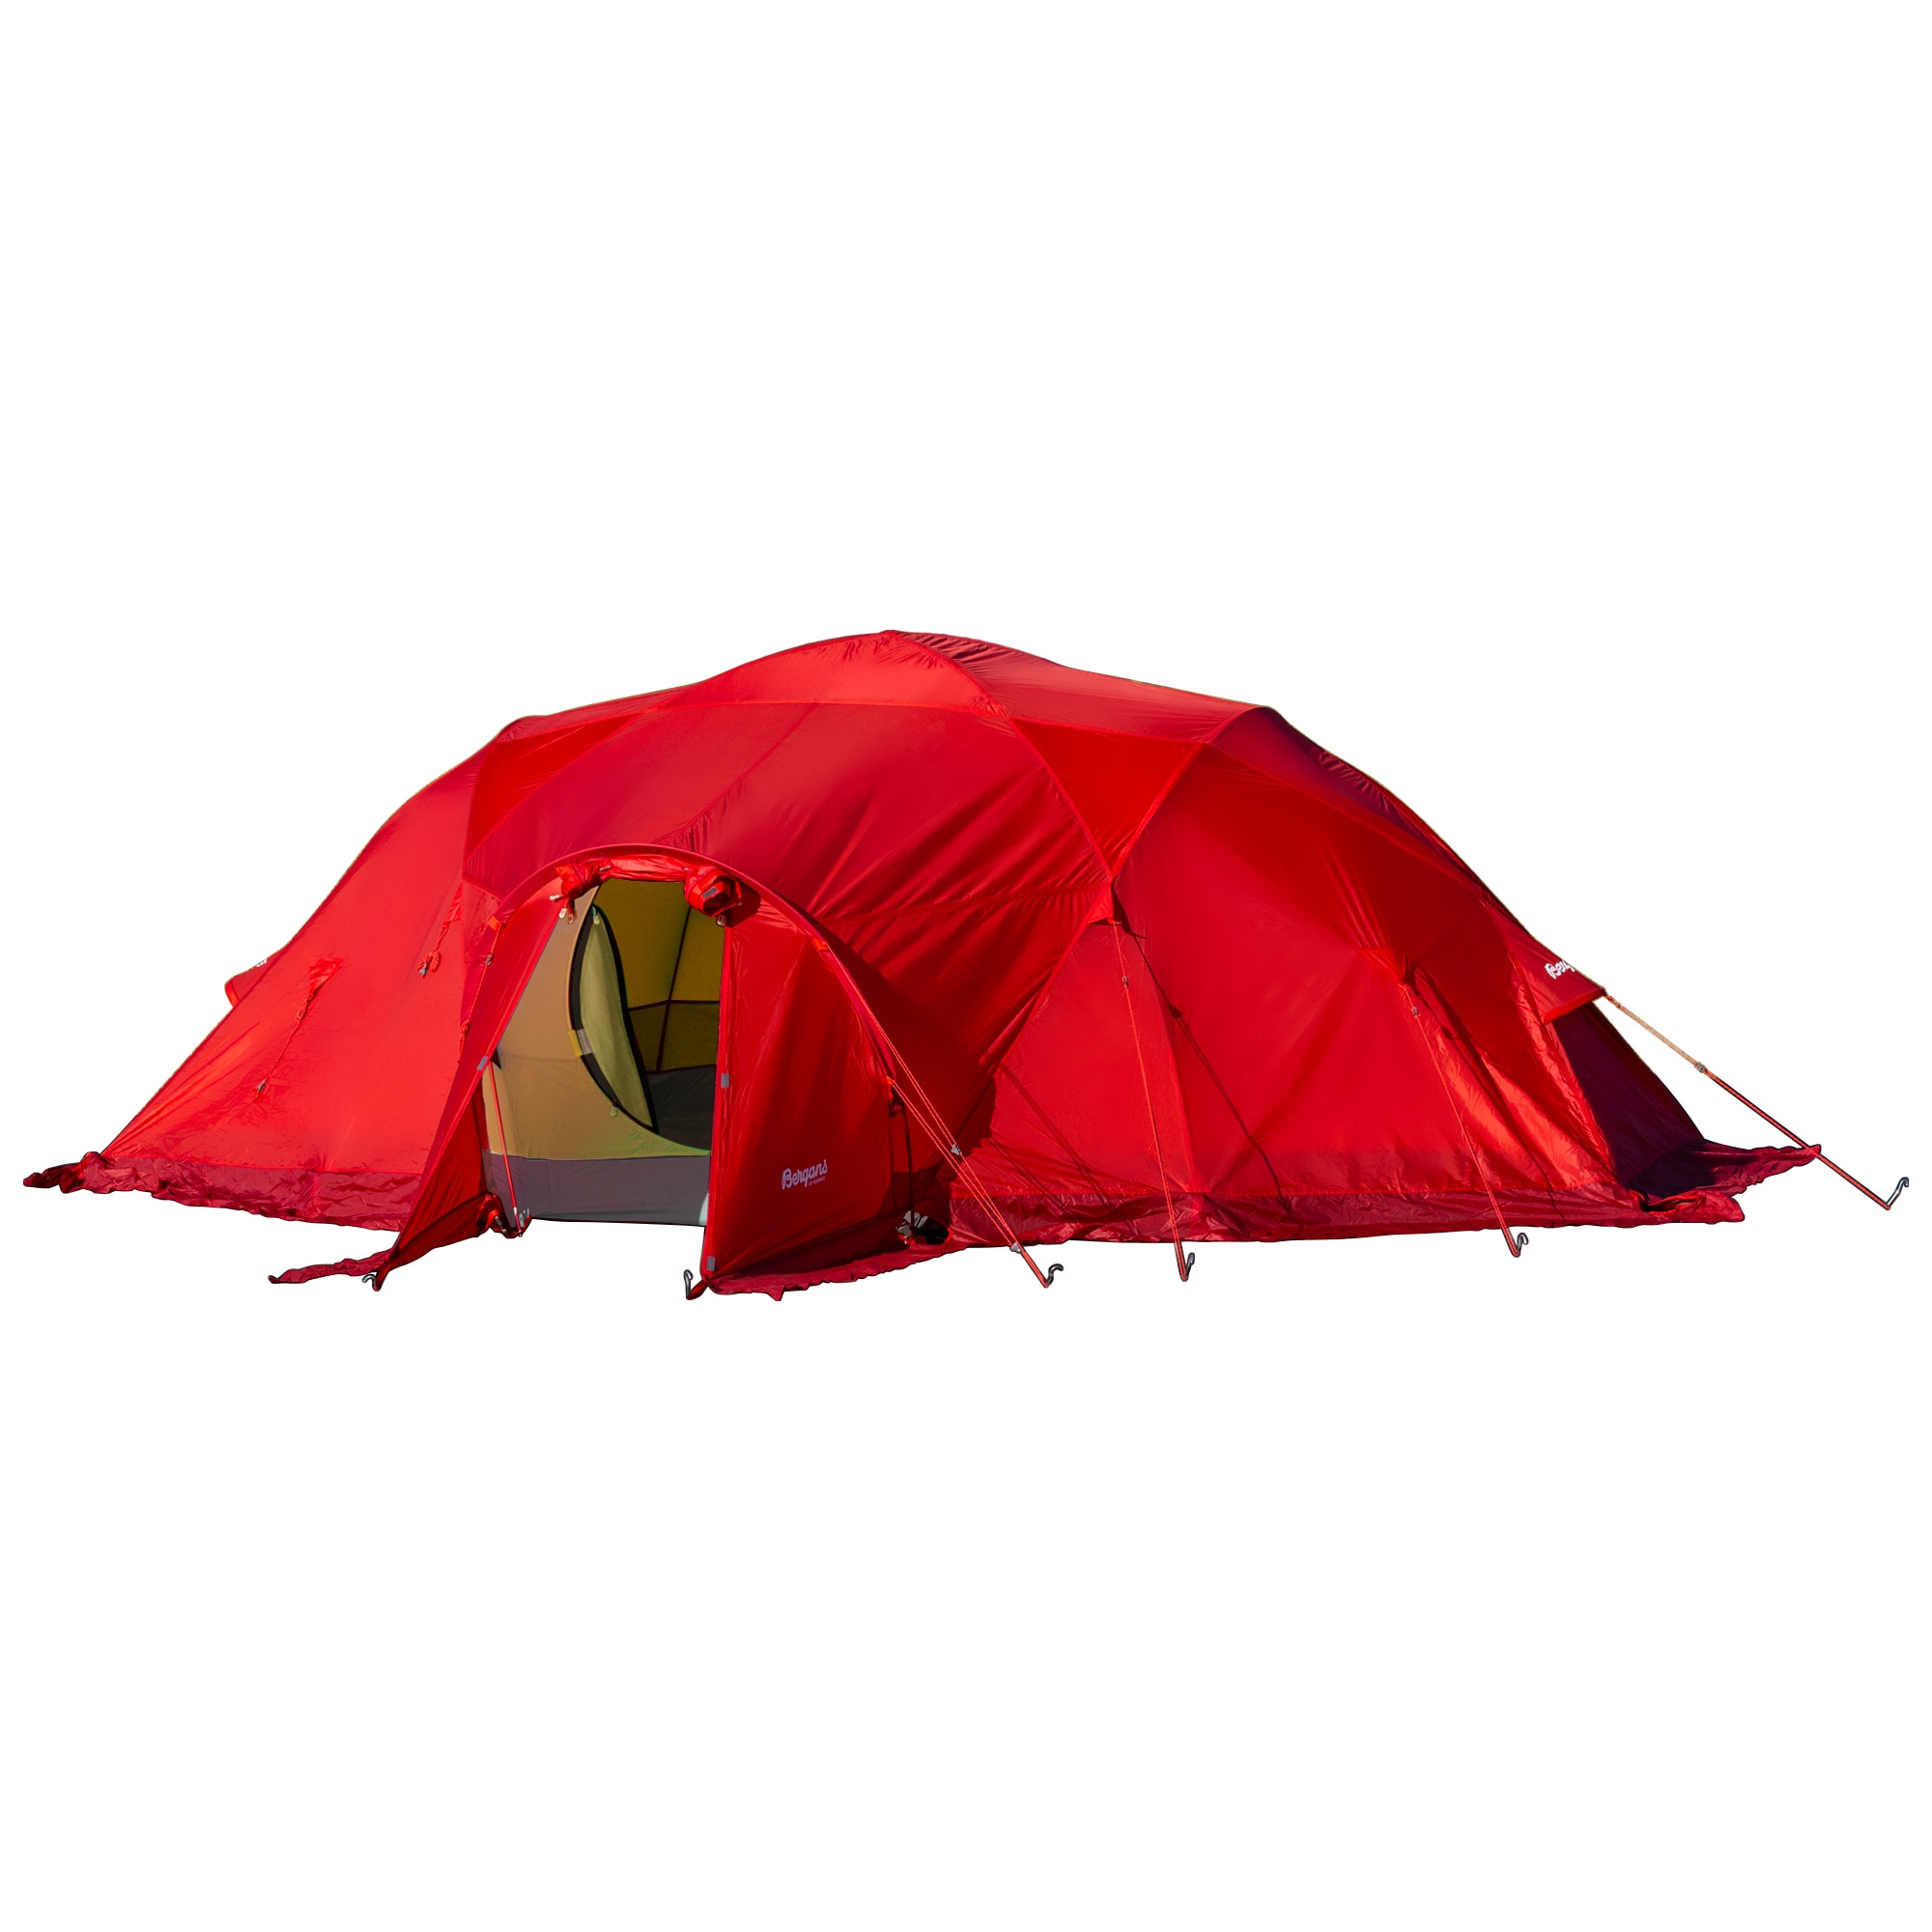 Helium Expedition Dome 6 Tent